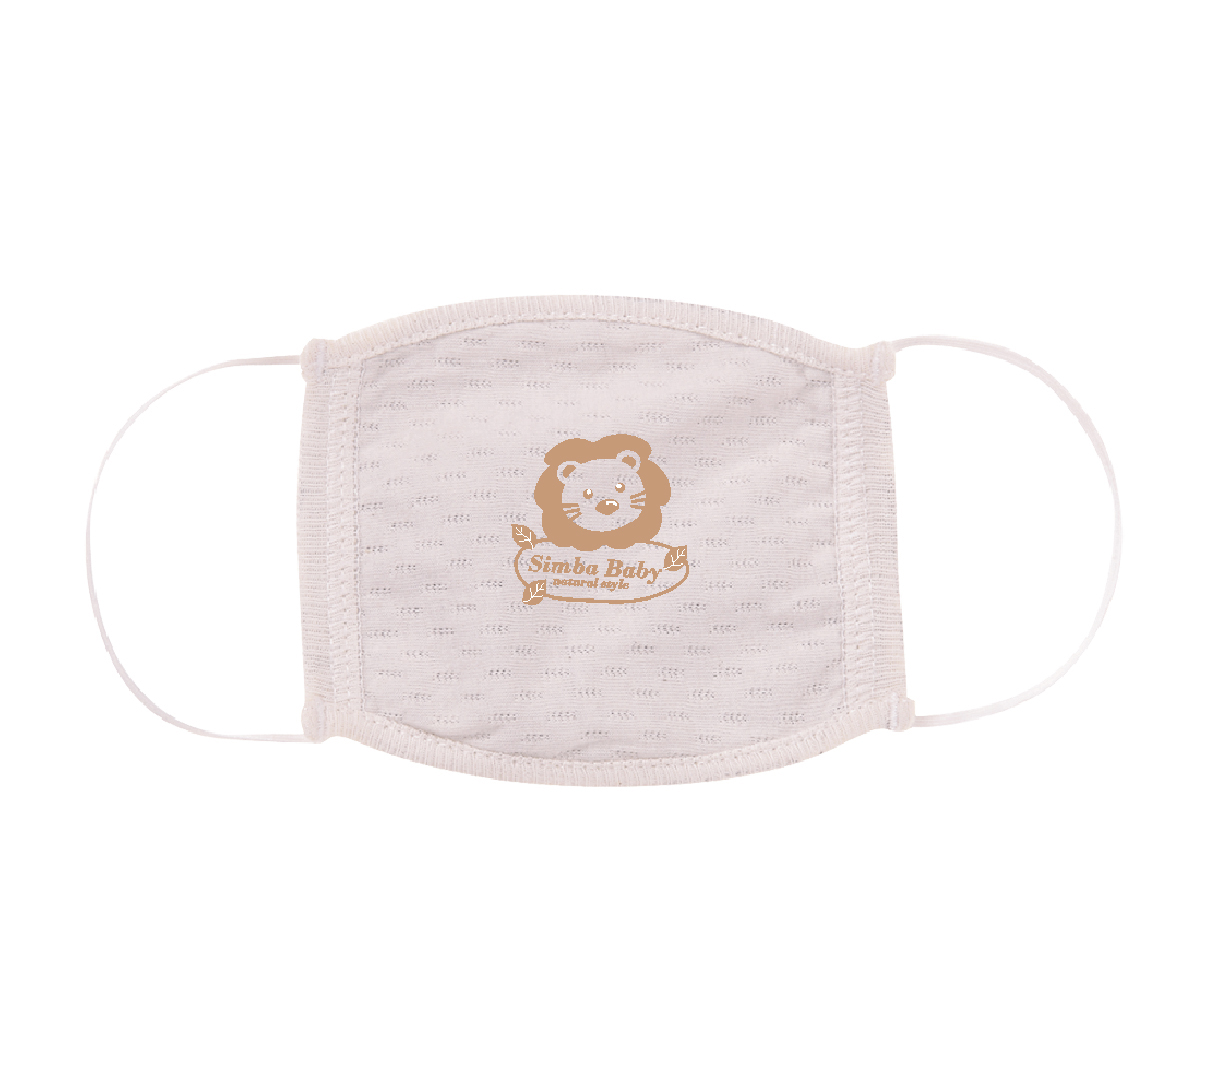 Simba Organic Cotton Baby Mask with Bamboo Charcoal Fiber Lining ( 1 -2 years old )